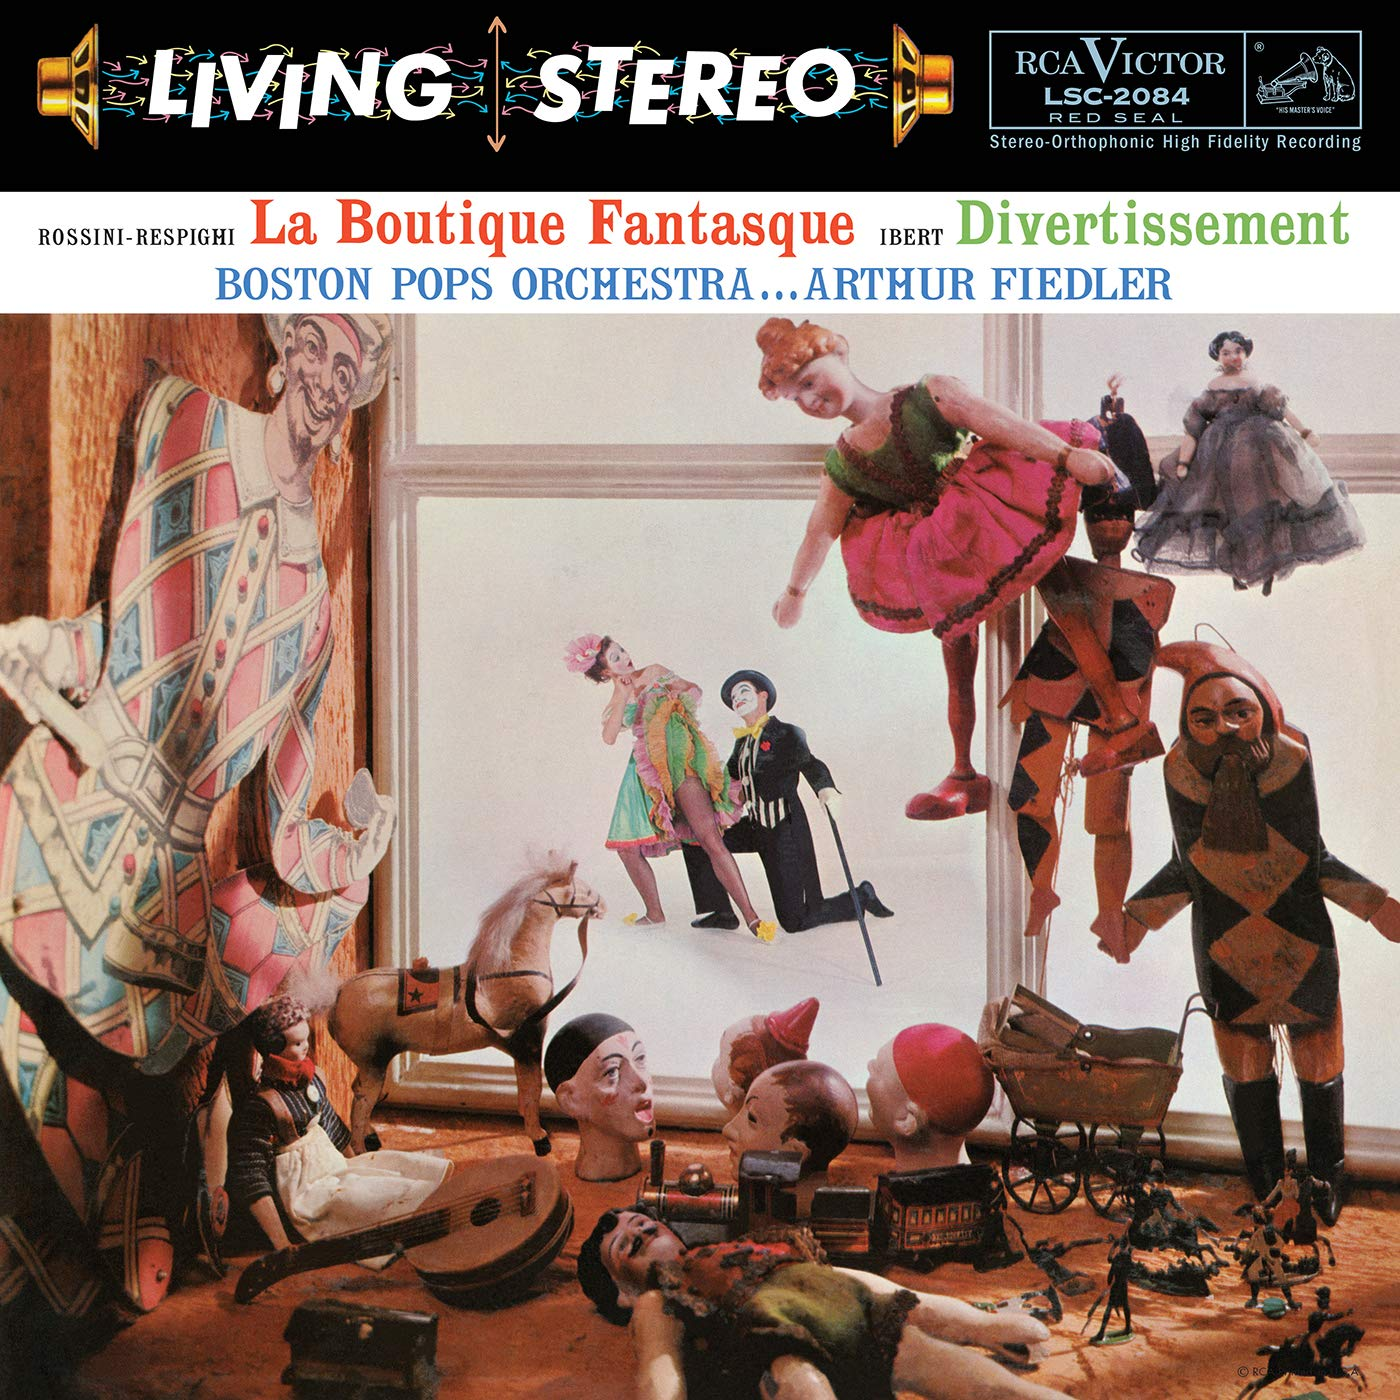 Vinilo : Arthur Fiedler - Rossini-respighi - La Boutique Fantasque & Ibert - Divertissement (200 Gram Vinyl)